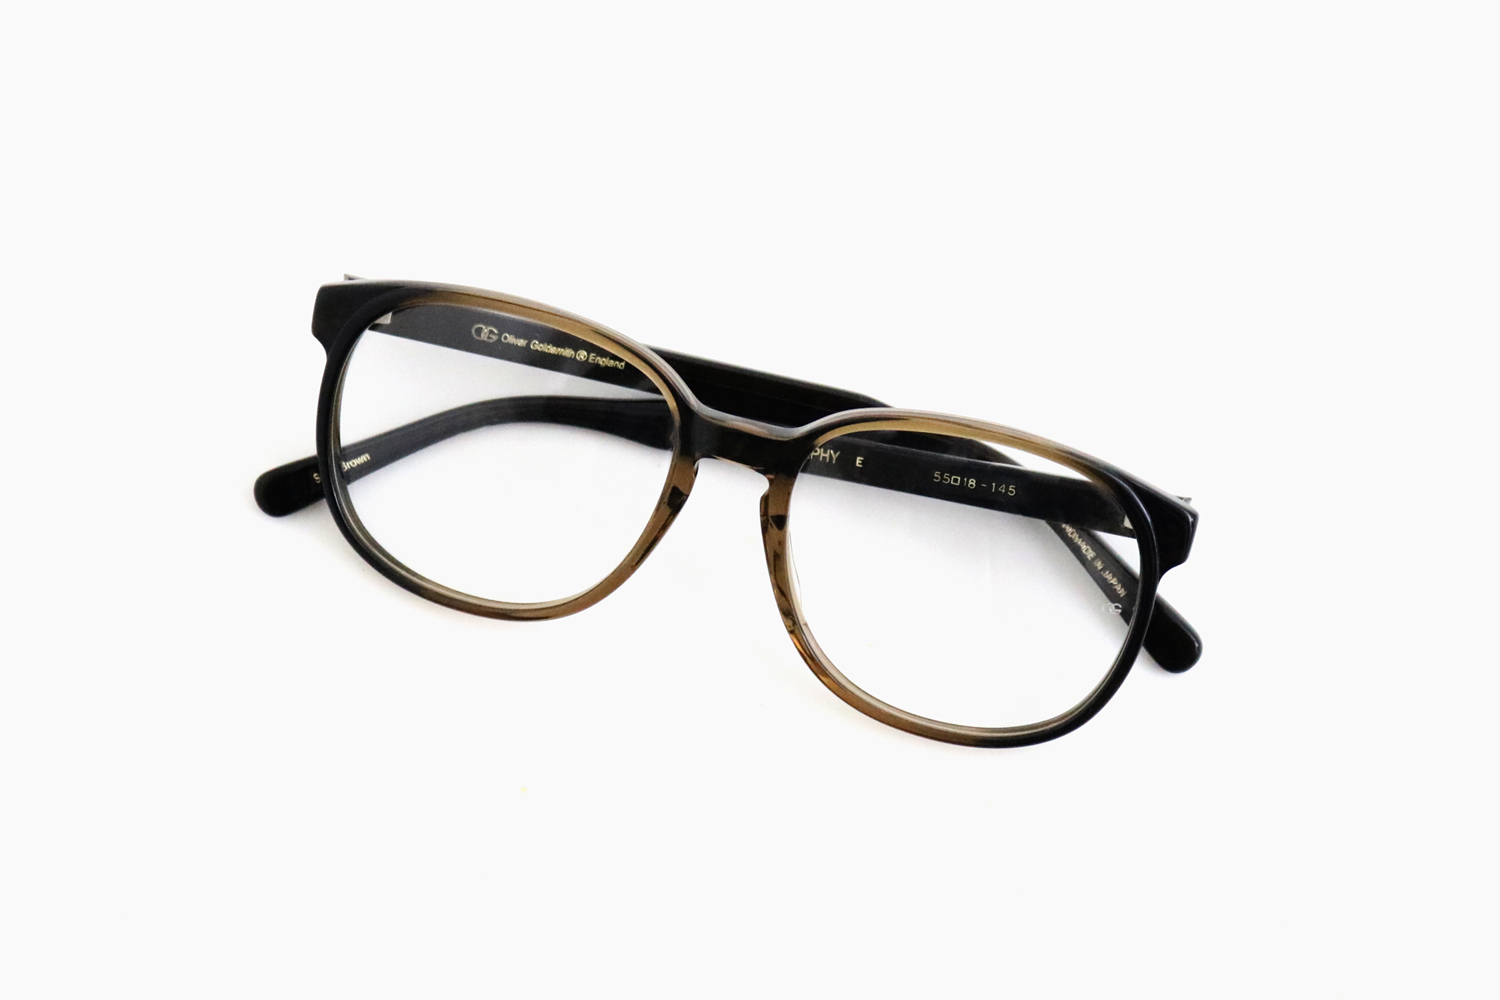 PICK UP MODEL|OLIVER GOLDSMITH – MURPHY